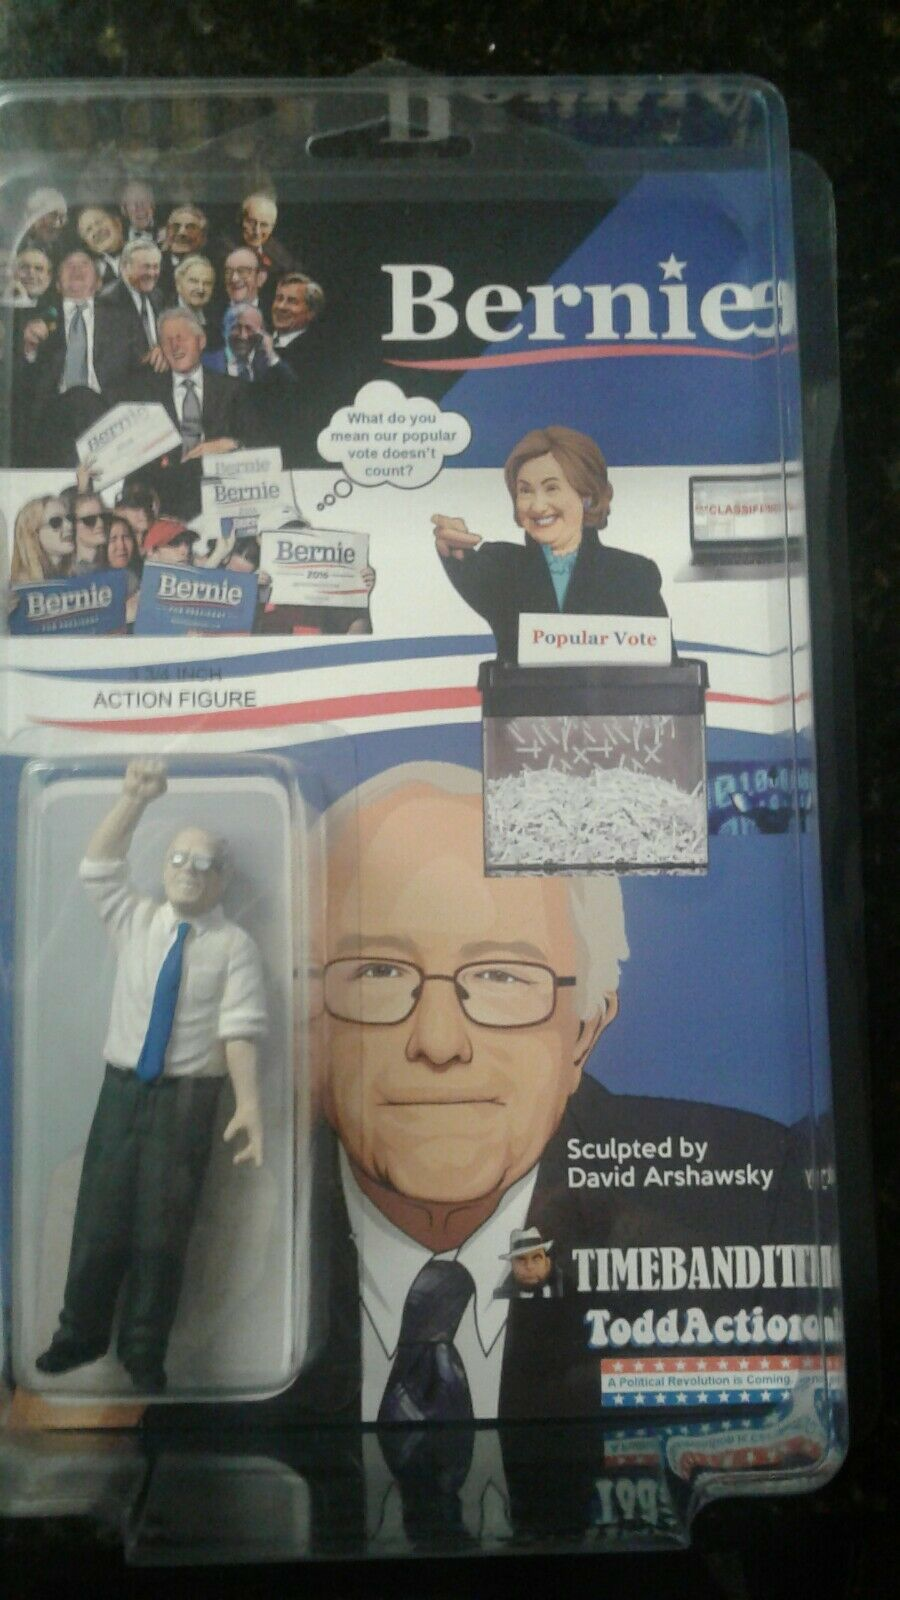 BERNIE SANDERS DKE SDCC KILLER StiefelLEG TIMEBANDITS TODDACTION SPECIAL ED NYCC